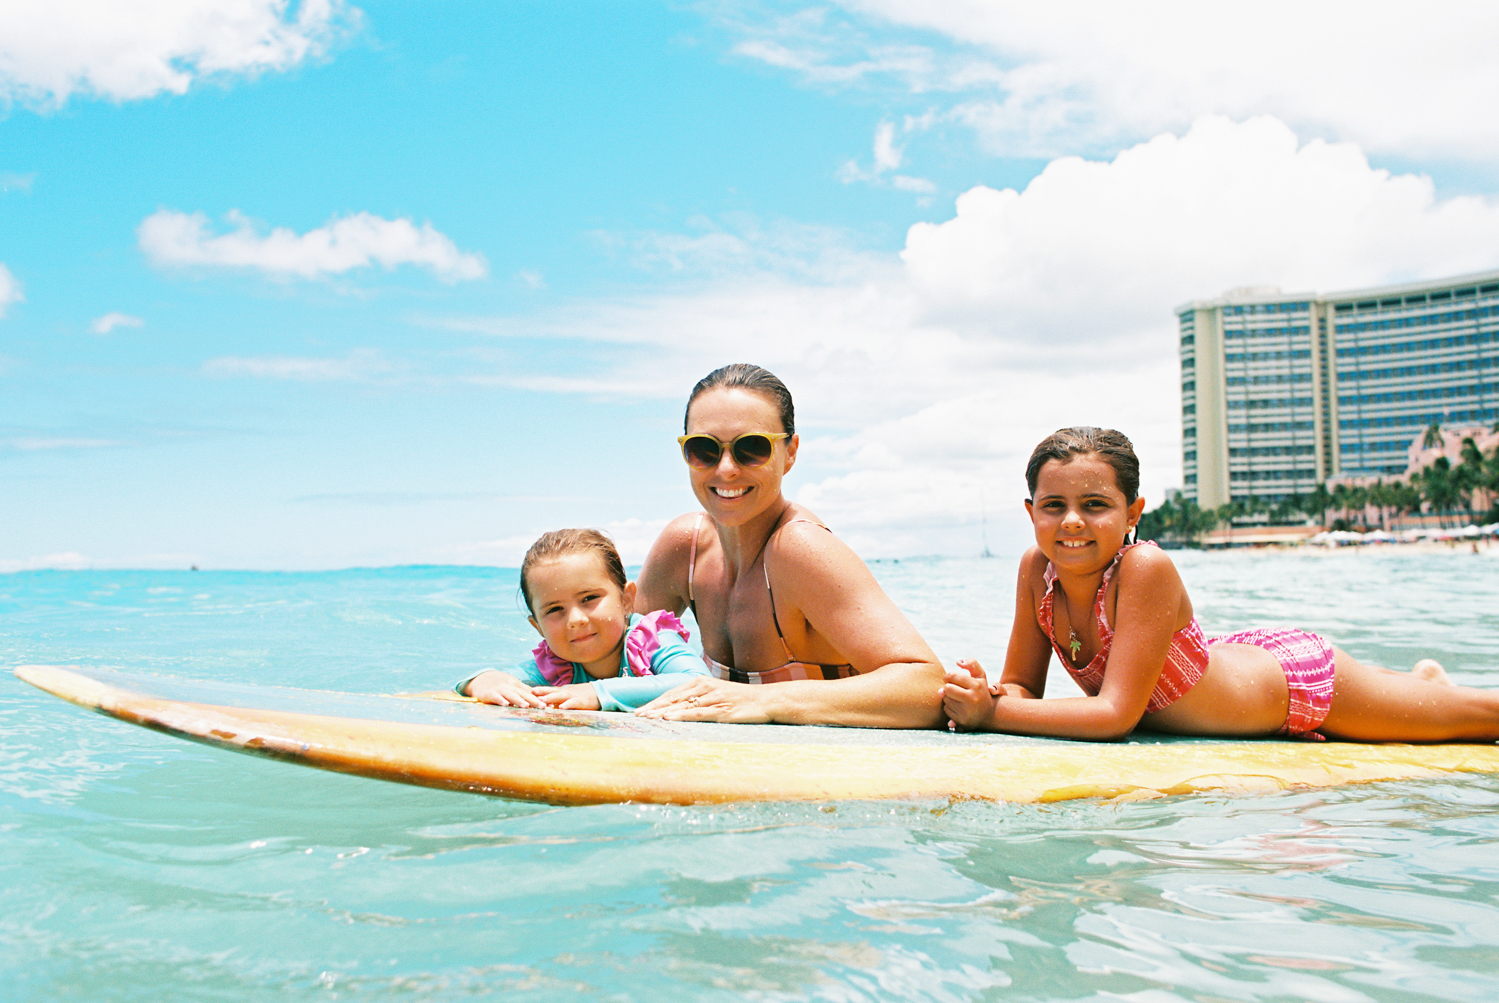 family photograph on surfboard by maui photograper wendy laurel